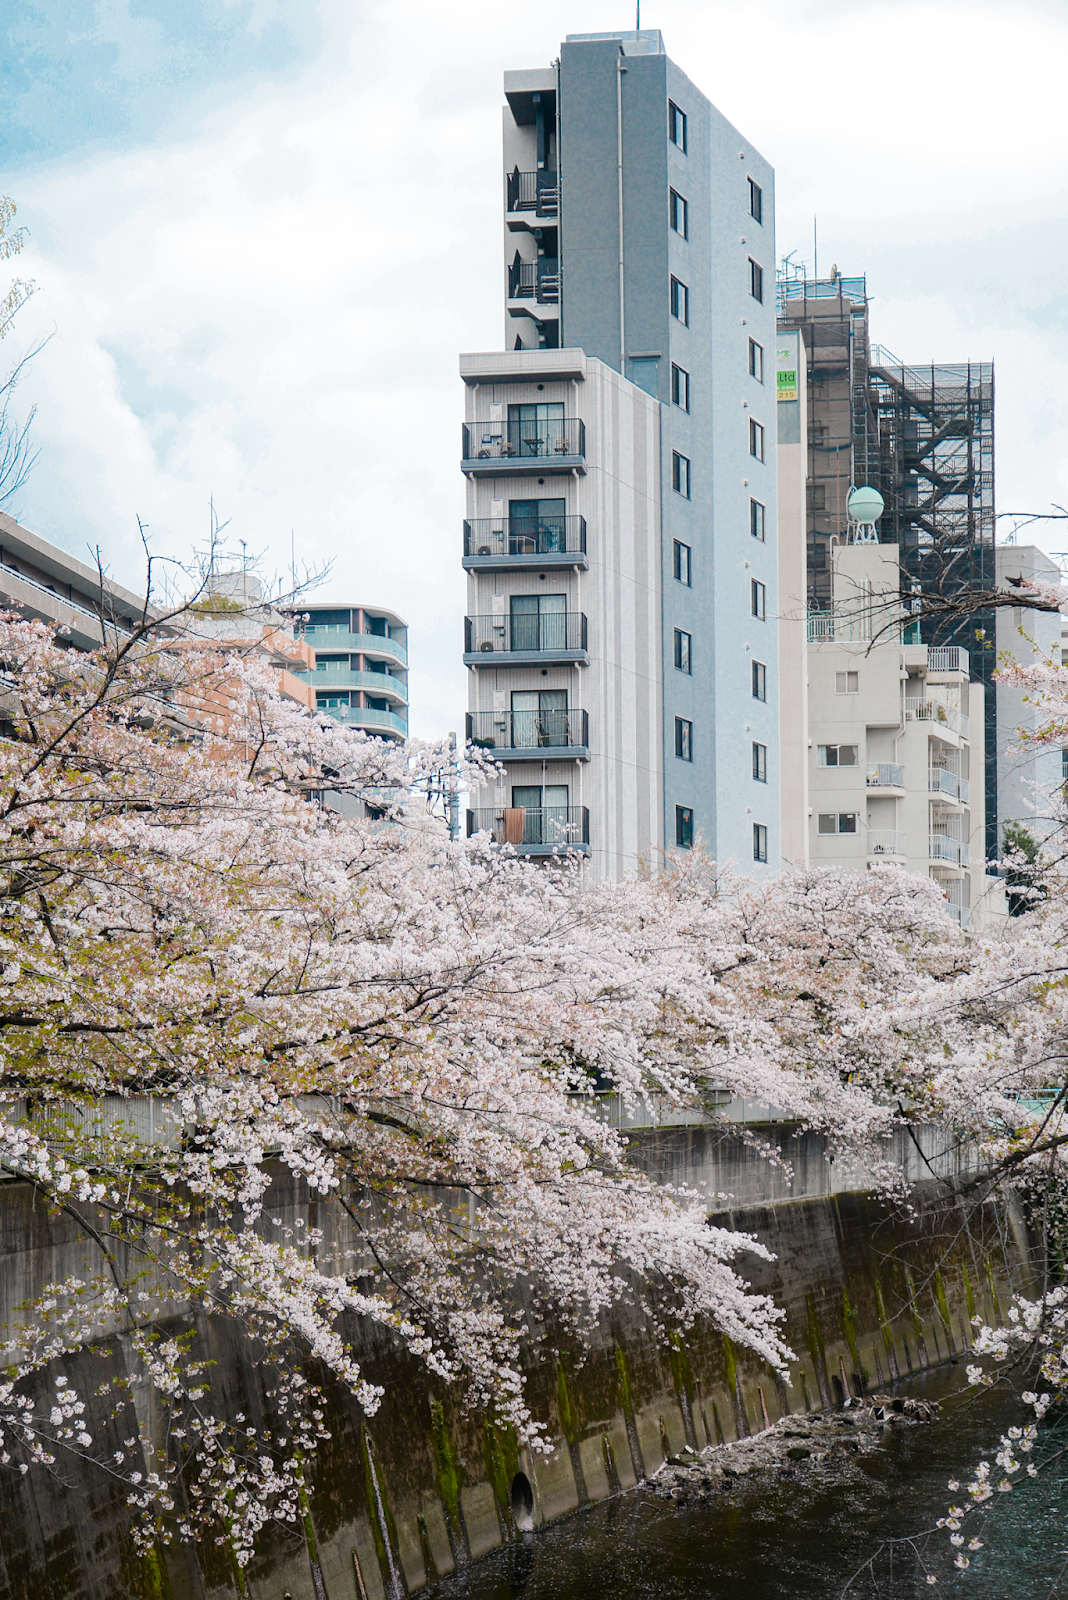 Cherry blossom viewing in local neighborhood, Tokyo cherry blossom hidden spot, Tokyo's Not So Secret Cherry Blossoms Spots That You Might Not Know Of - Style and Travel Blogger Van Le (FOREVERVANNY.com)